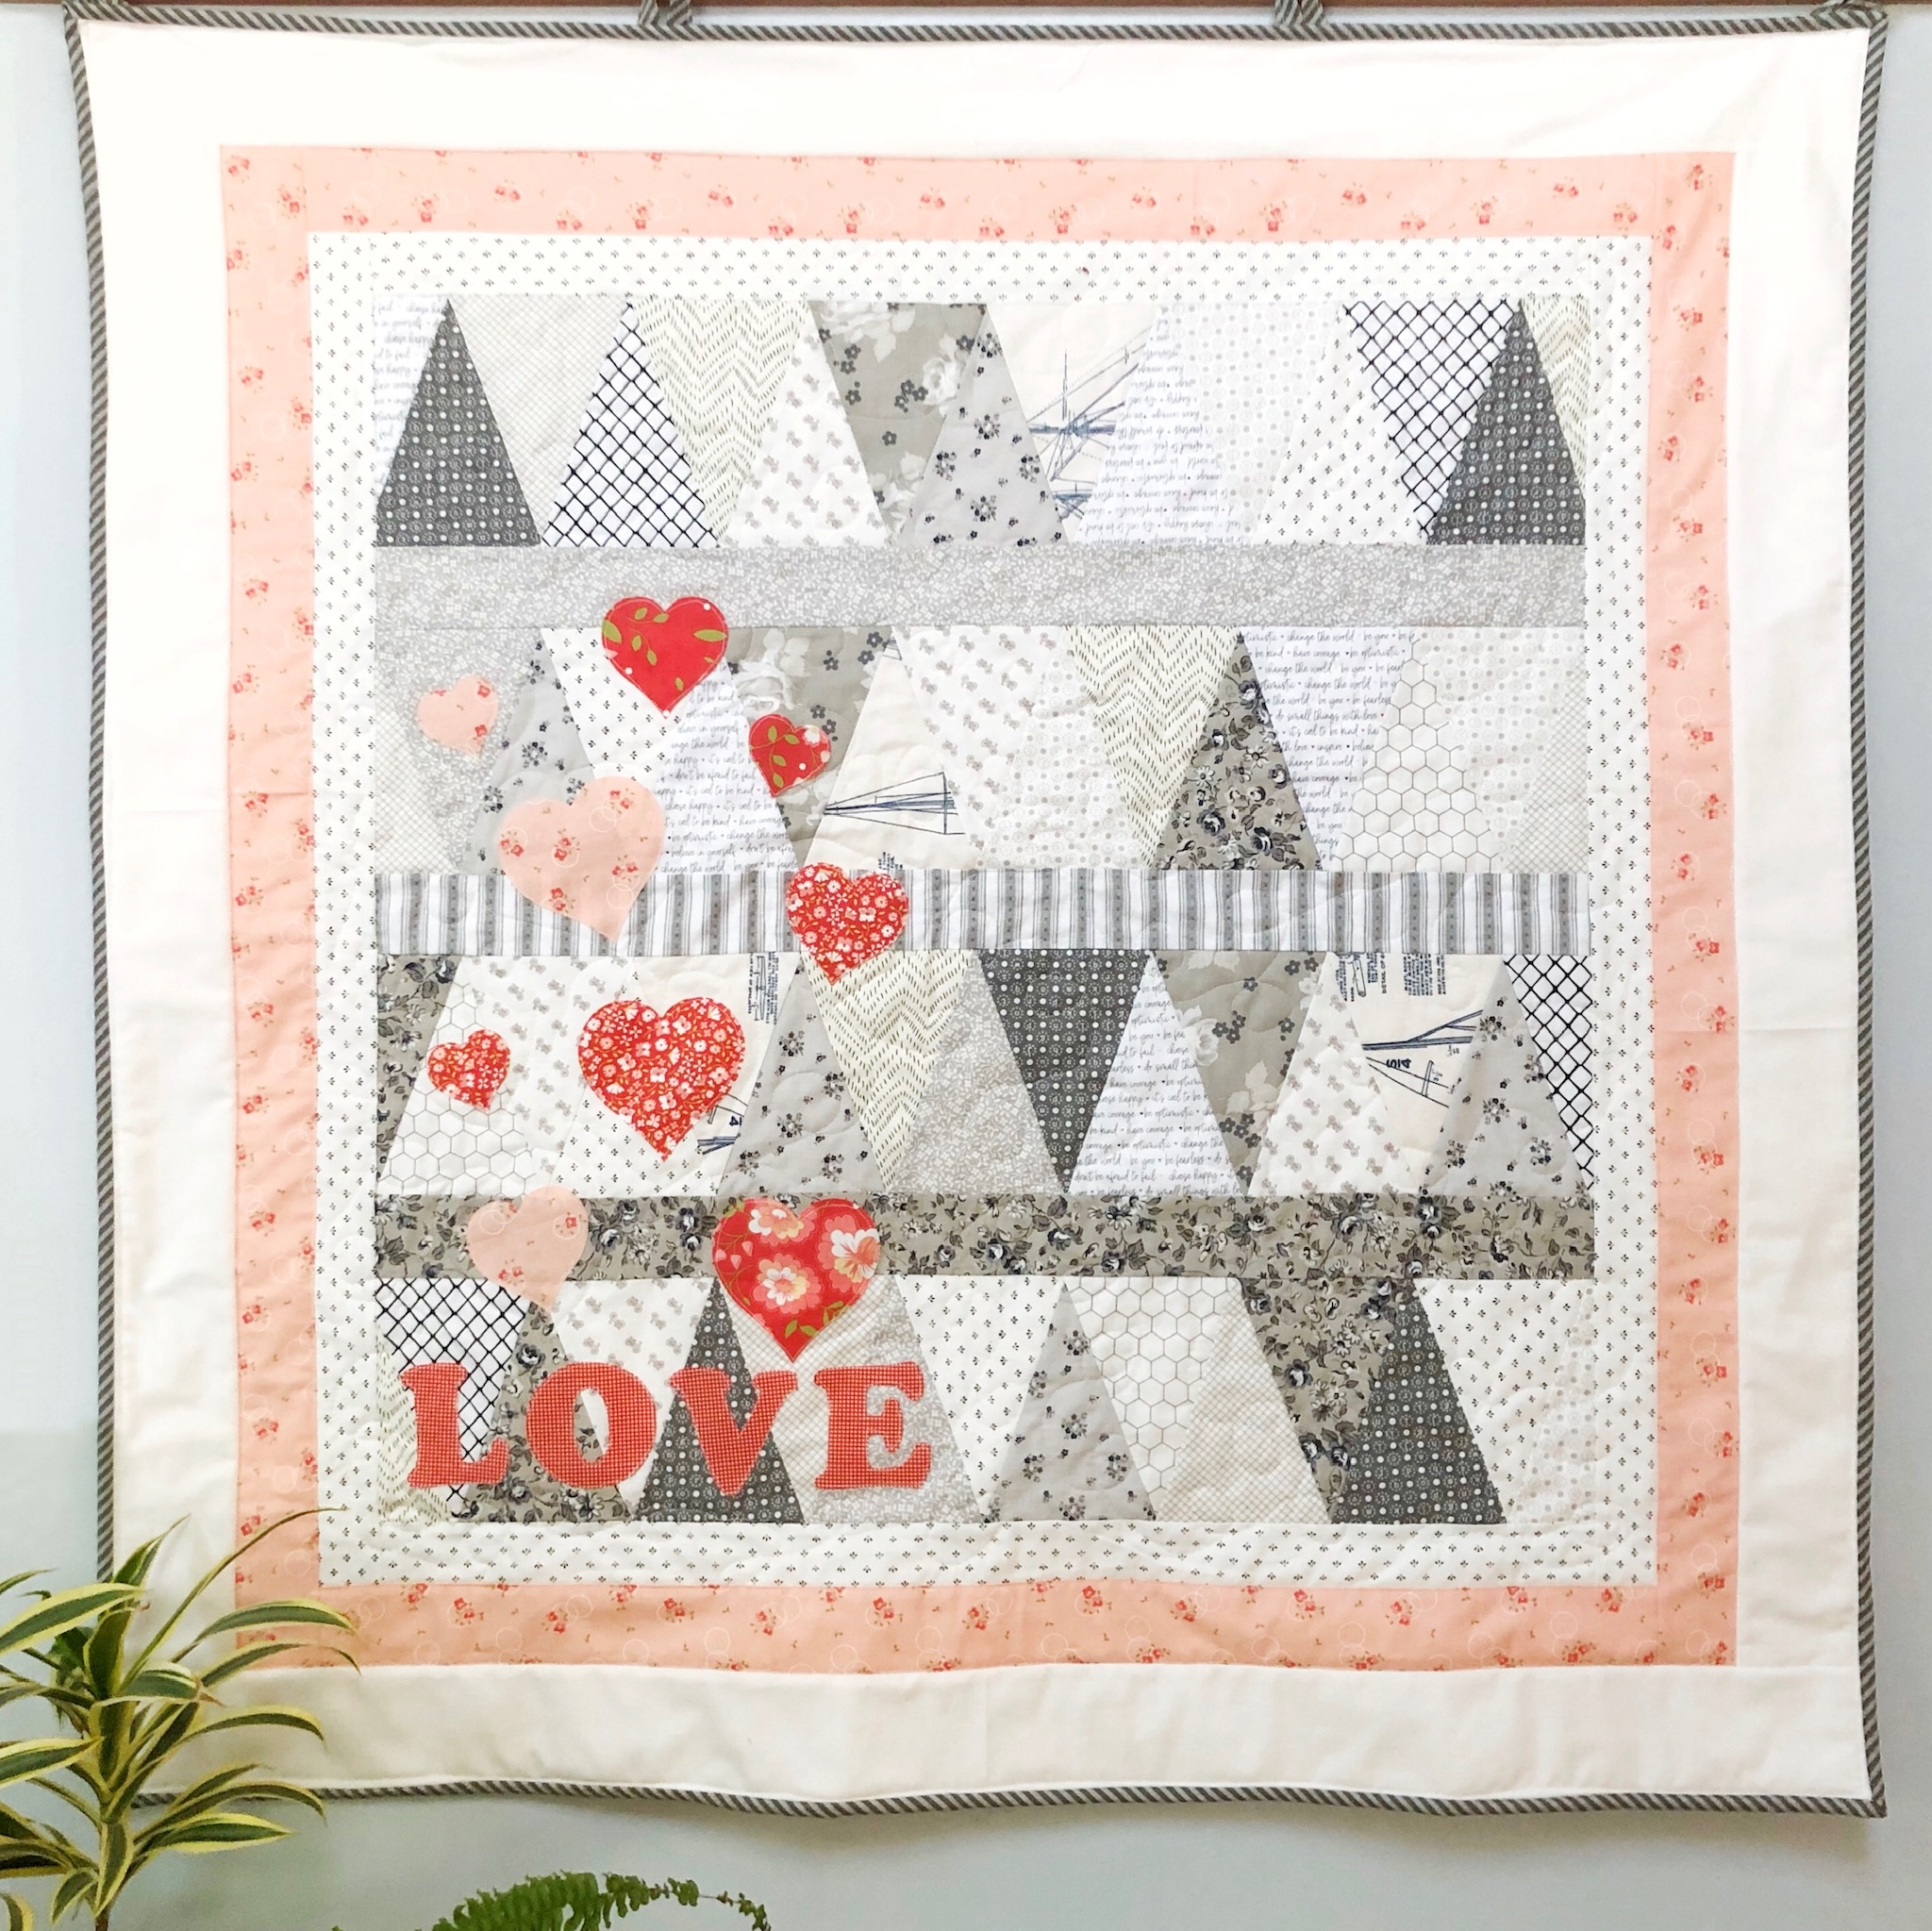 full view of low volume valentine's pennant quilt with heart and the word love appliqued in the lower right corner hanging on a wall